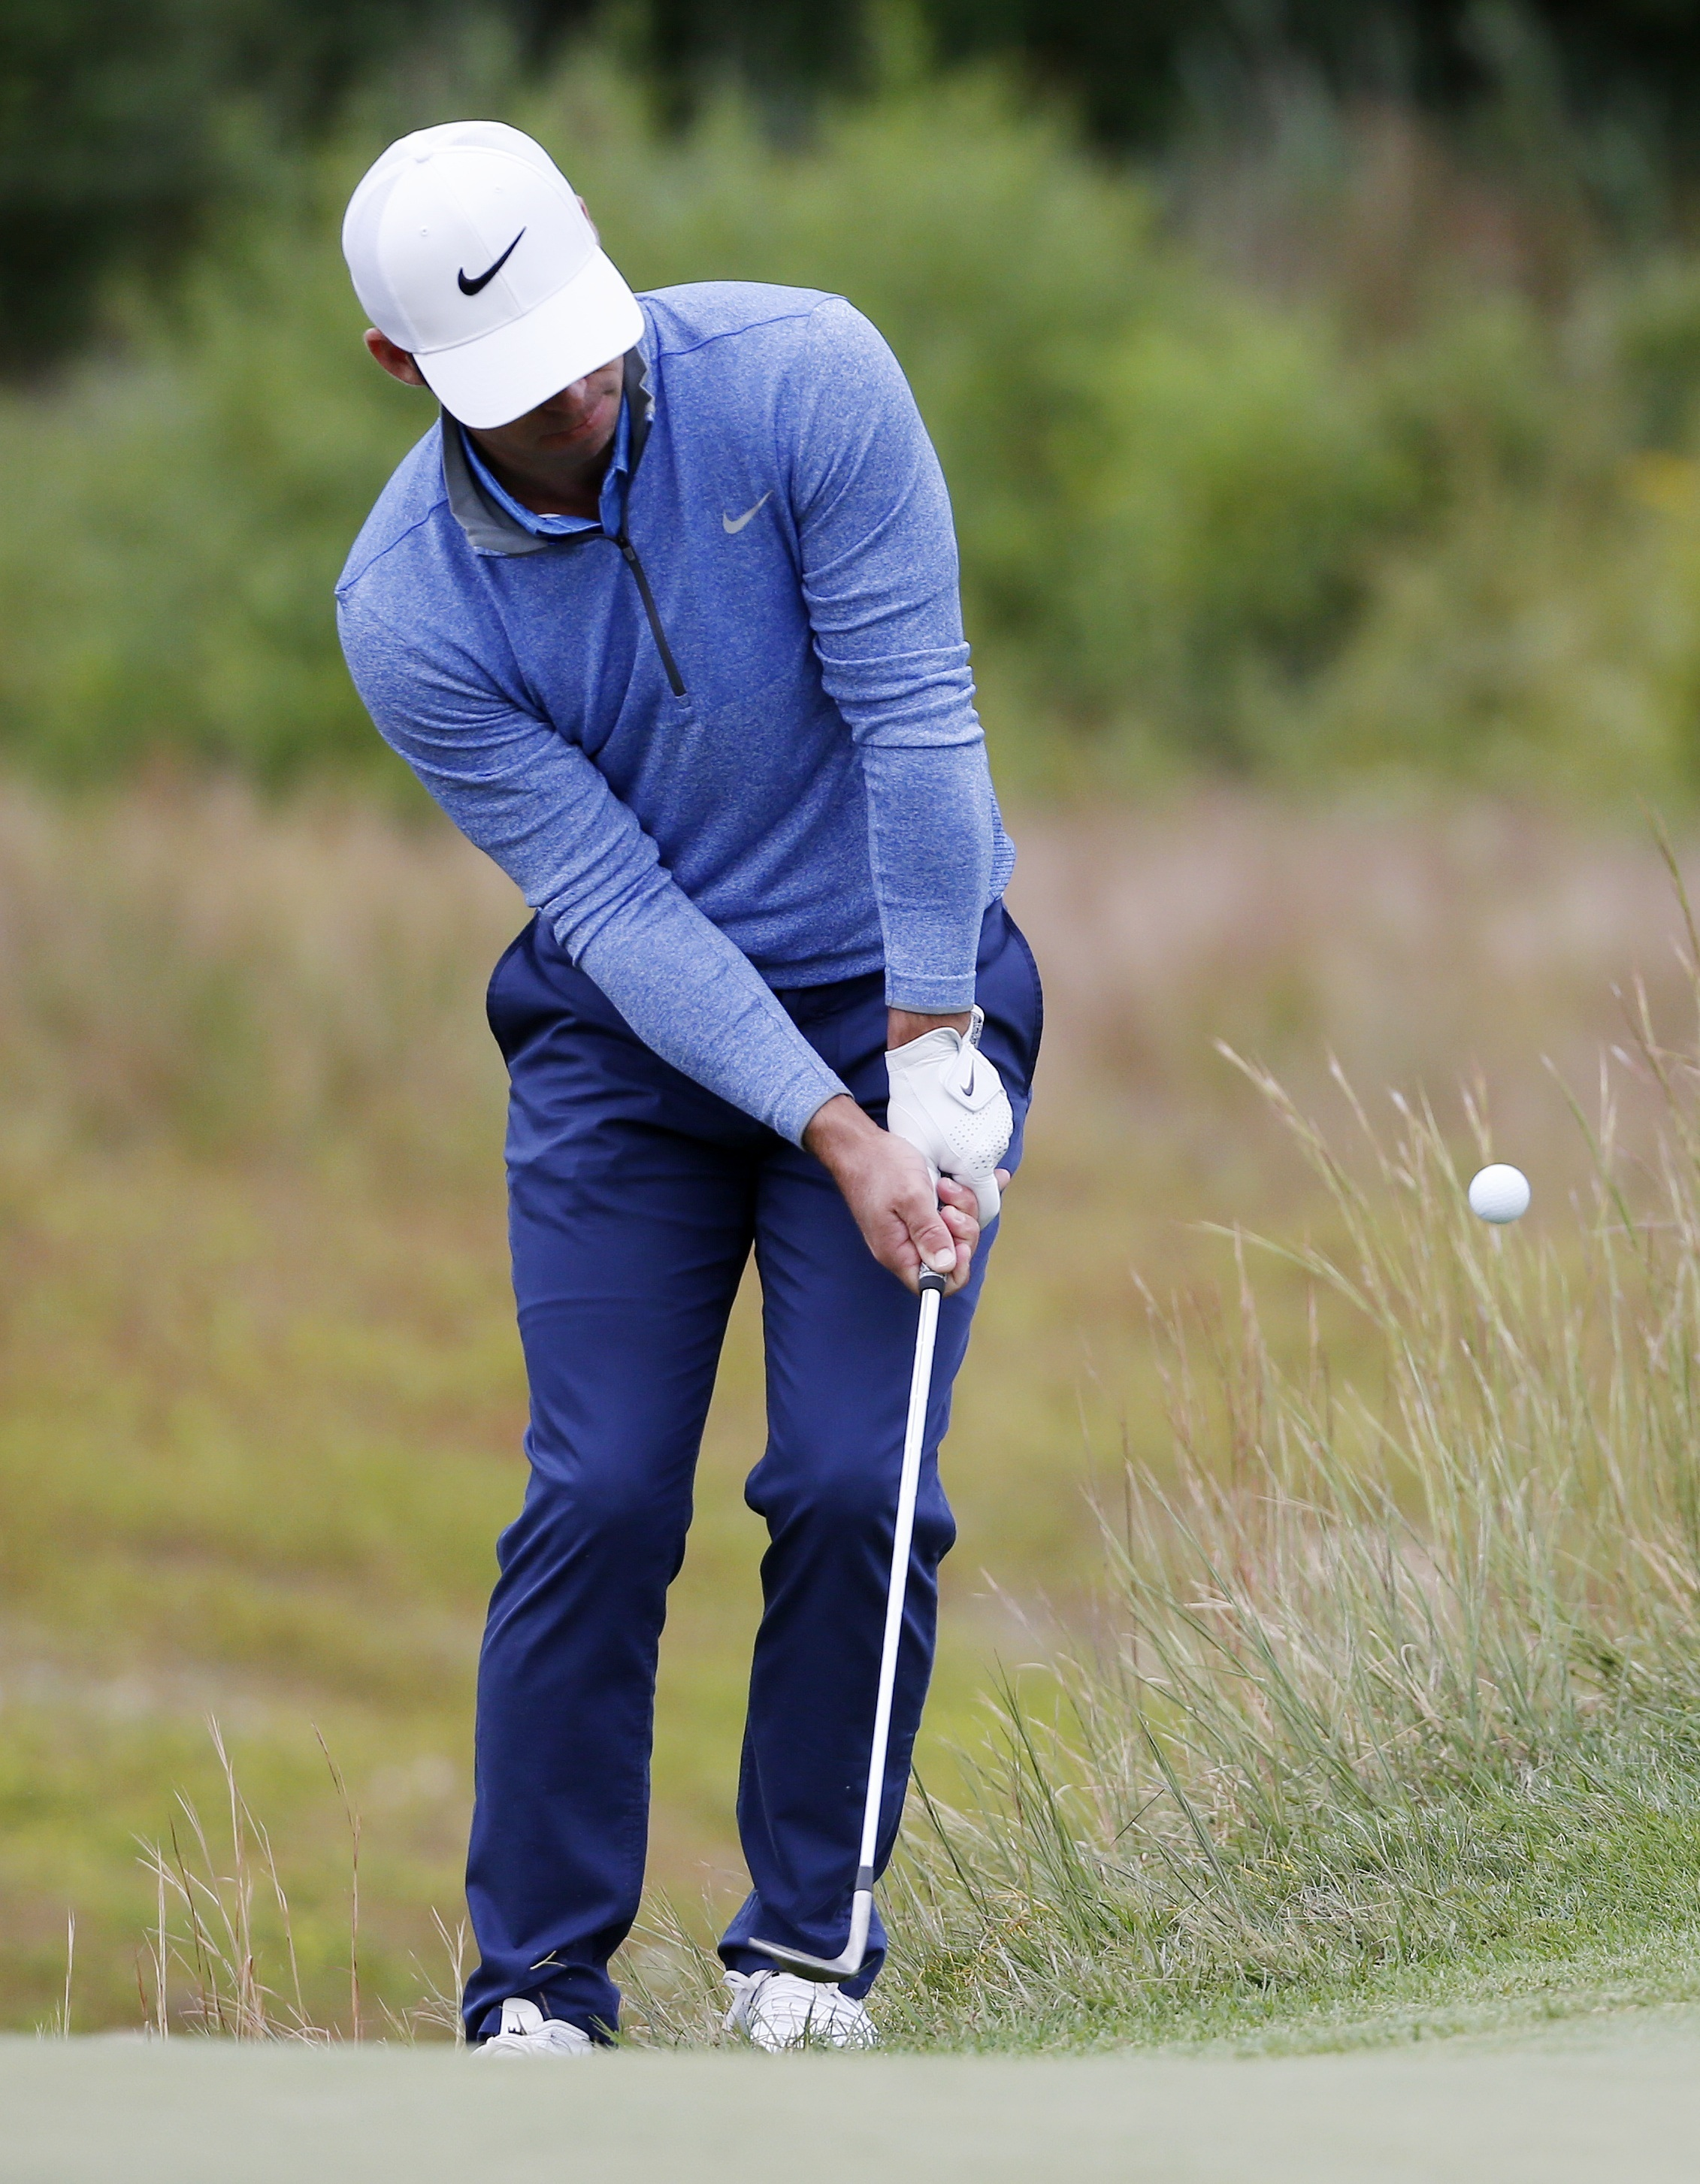 Paul Casey, of England, chips to the second green during the final round of the Deutsche Bank Championship golf tournament in Norton, Mass., Monday, Sept. 5, 2016. (AP Photo/Michael Dwyer)